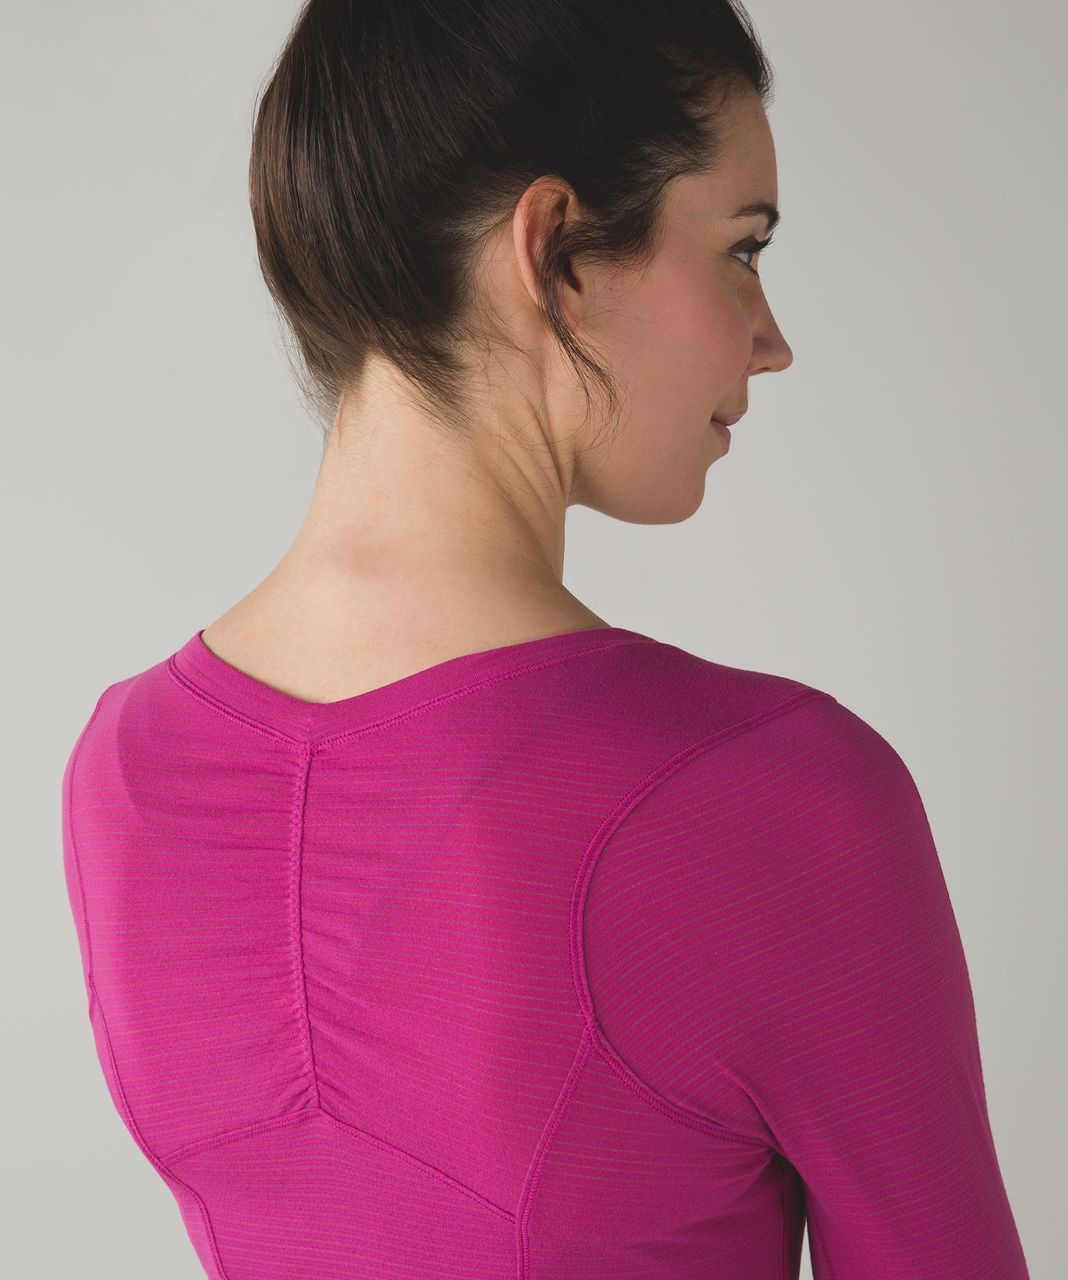 Lululemon 5 Mile Long Sleeve - Raspberry